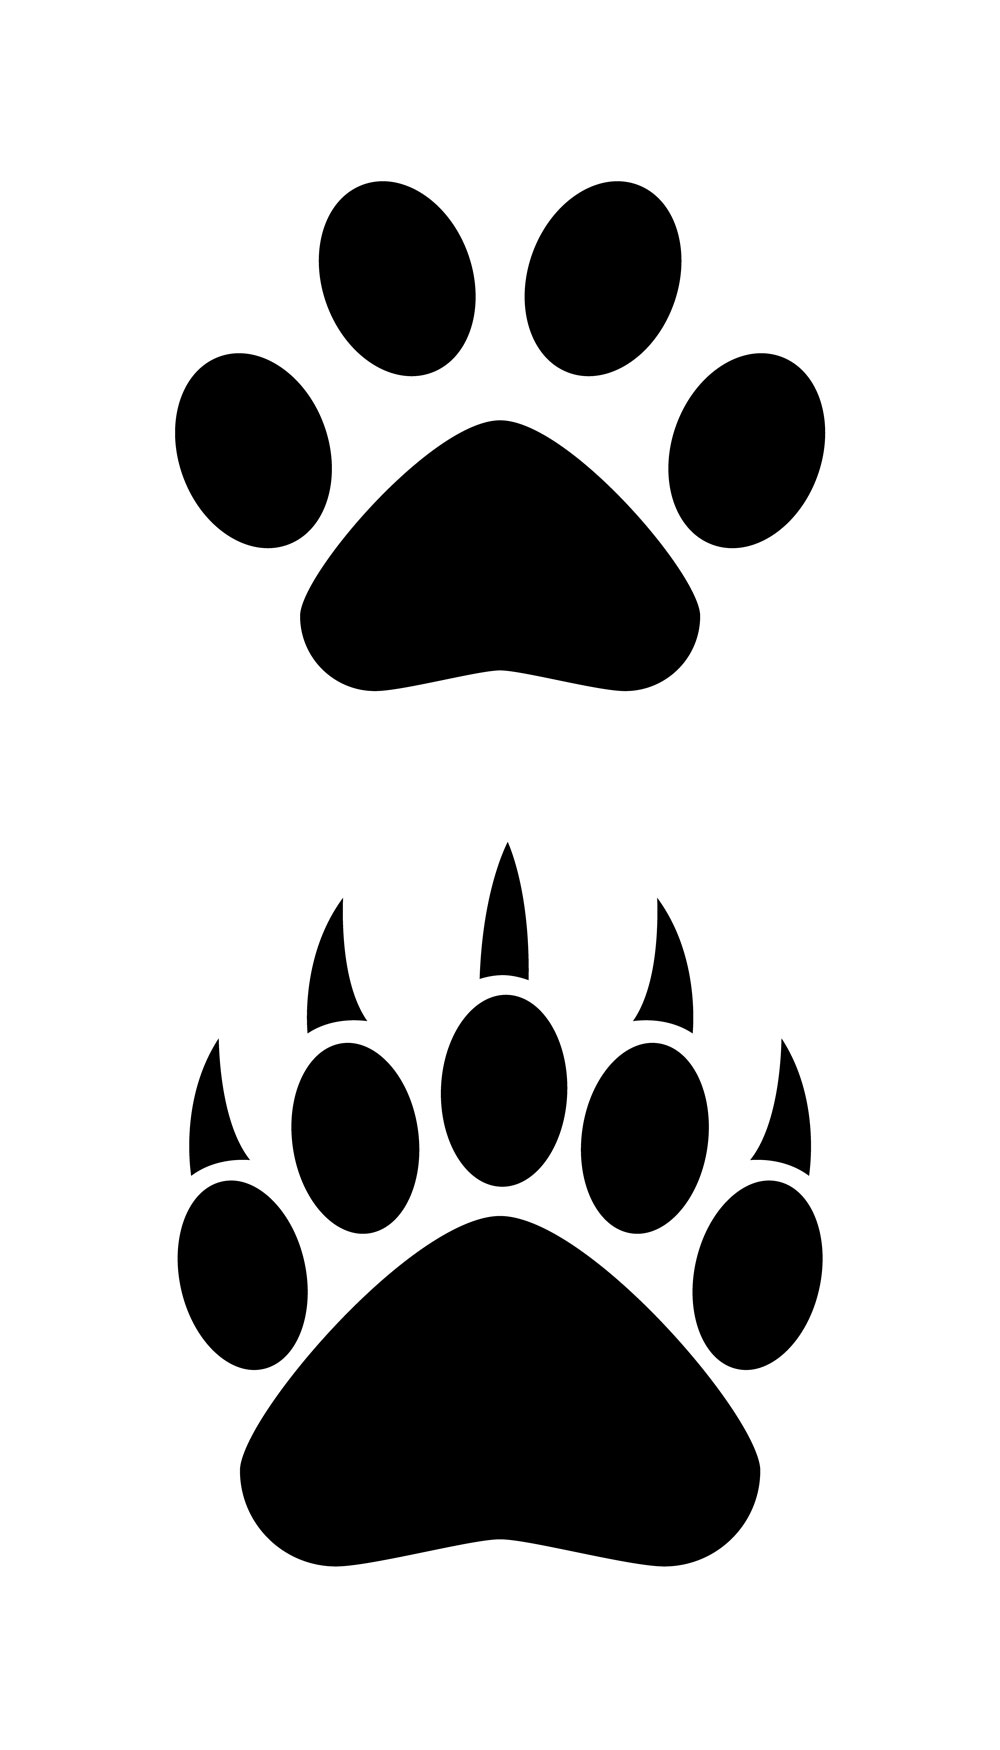 Pin Bear Paw Art On Pinterest-Pin Bear Paw Art On Pinterest-19